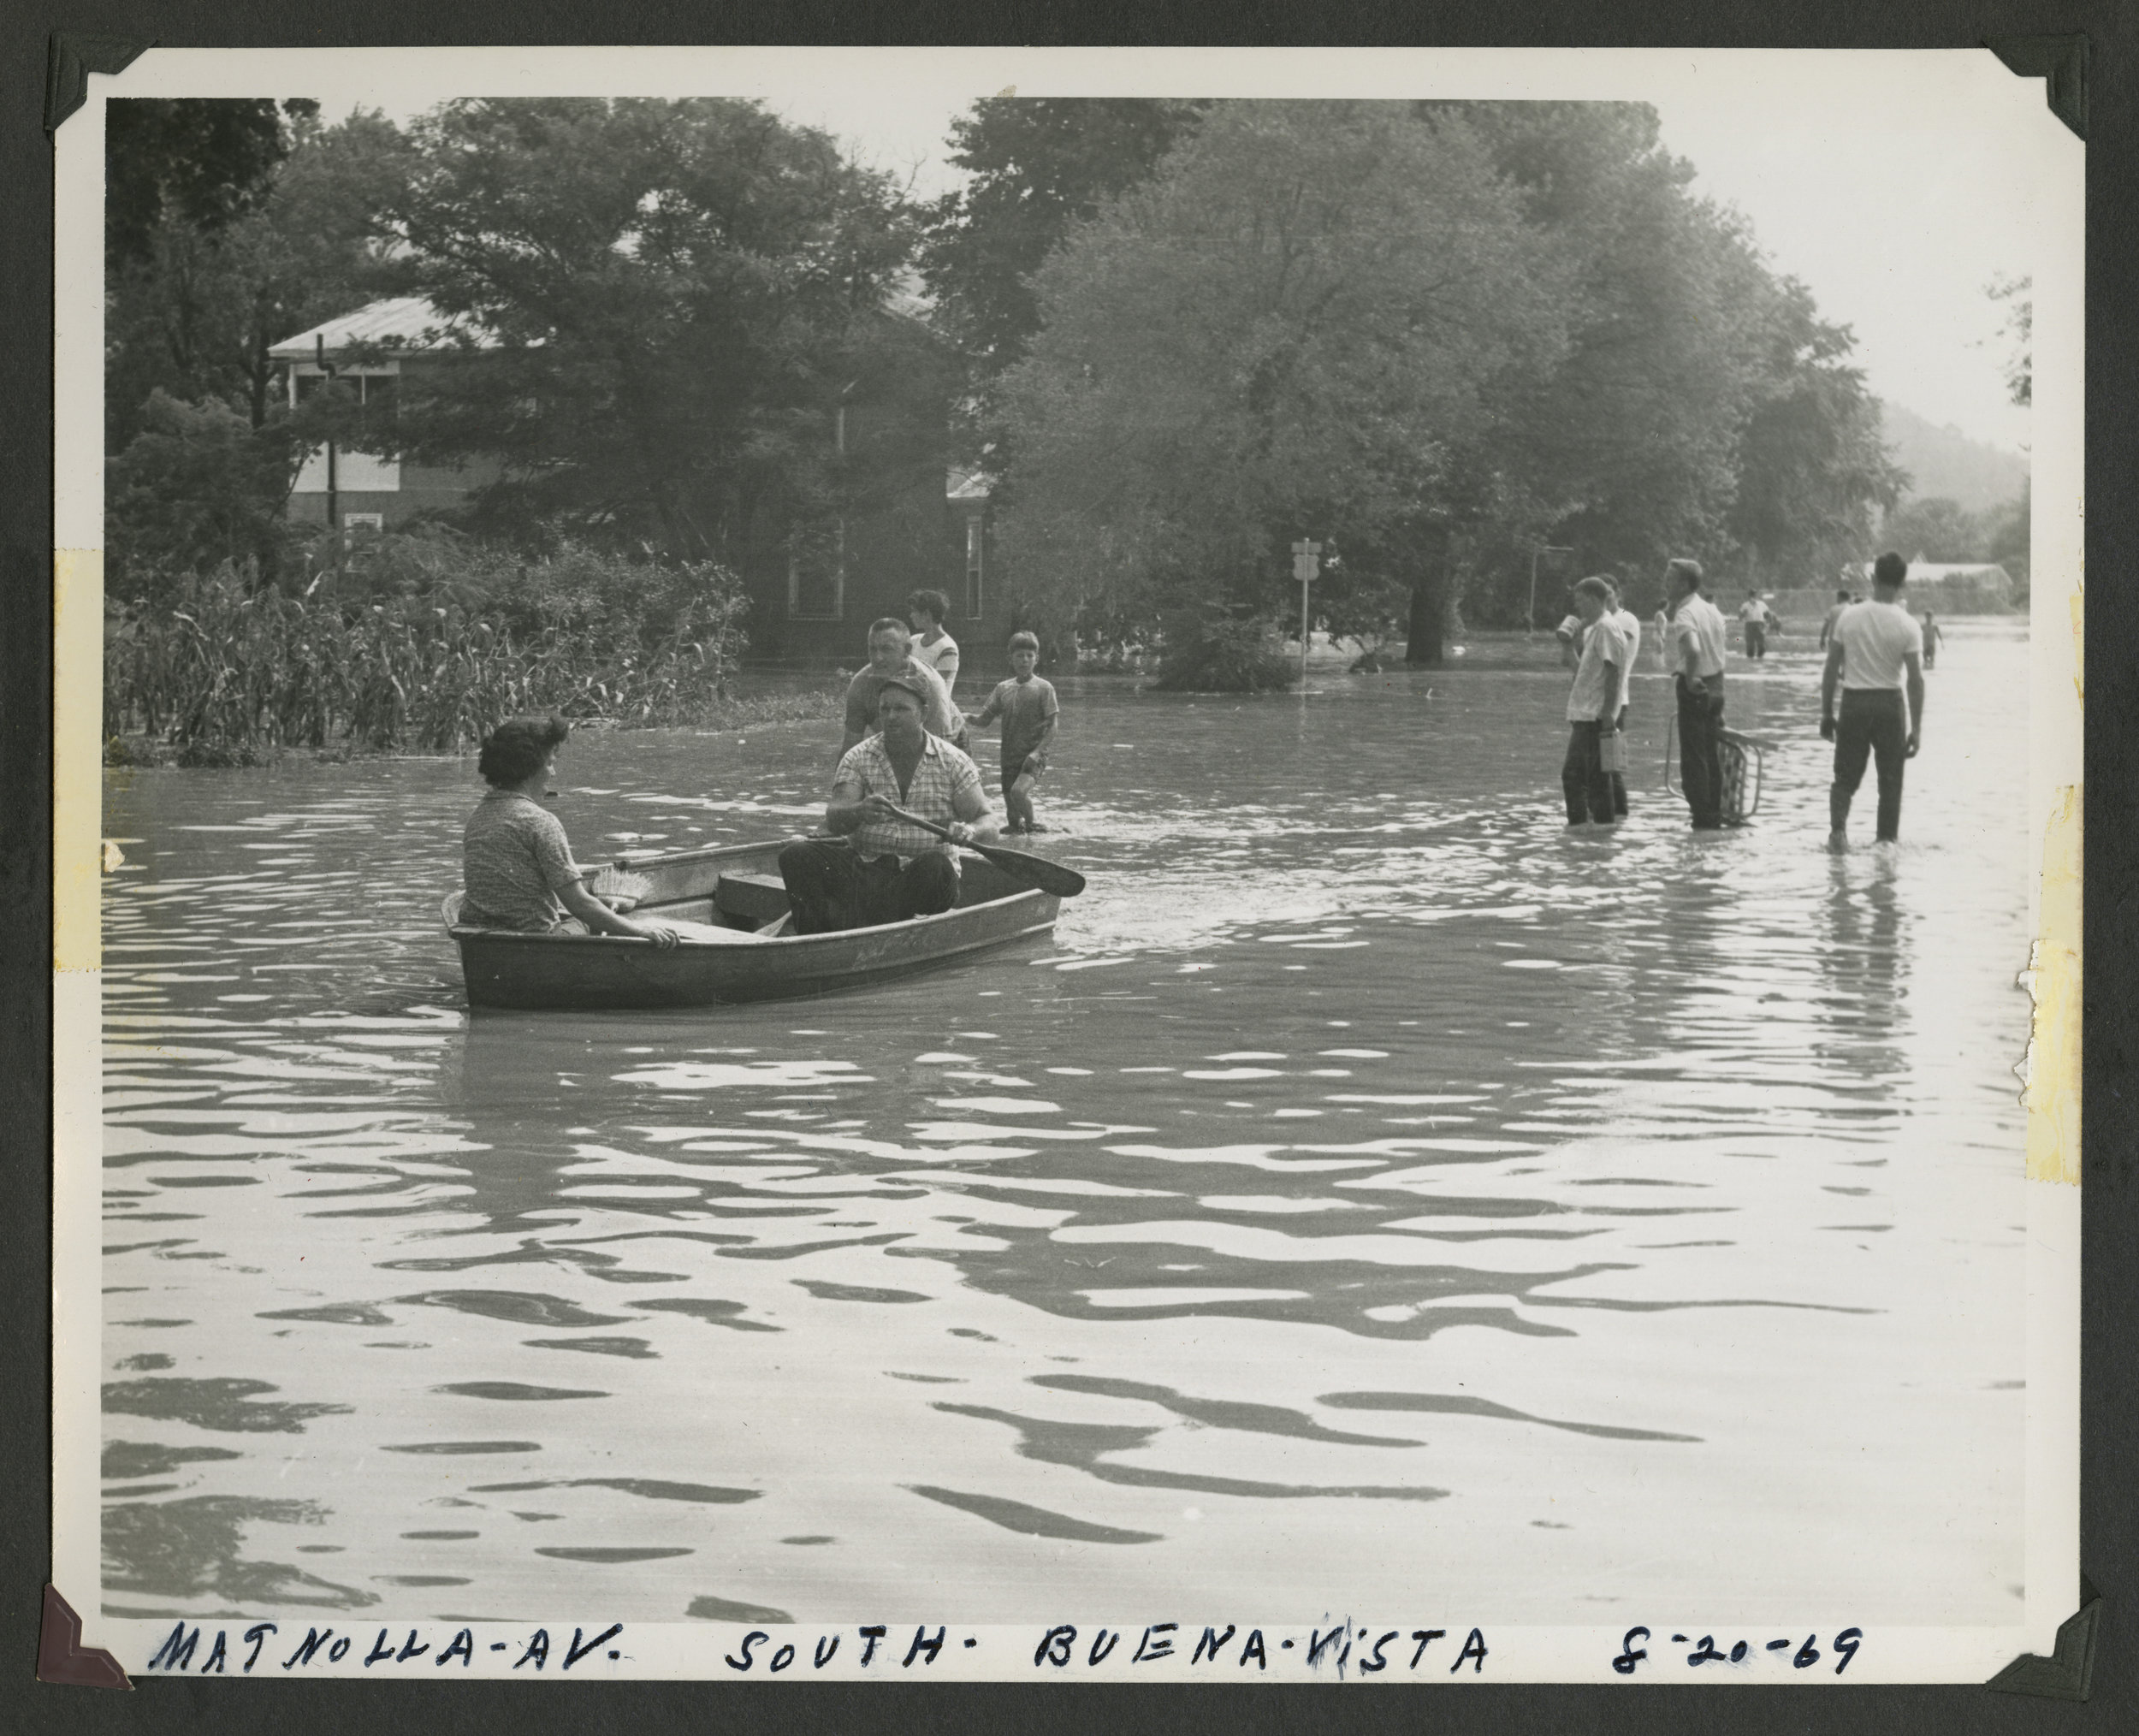 Cleanup after the 1969 flood (Courtesy of Washington and Lee archives)